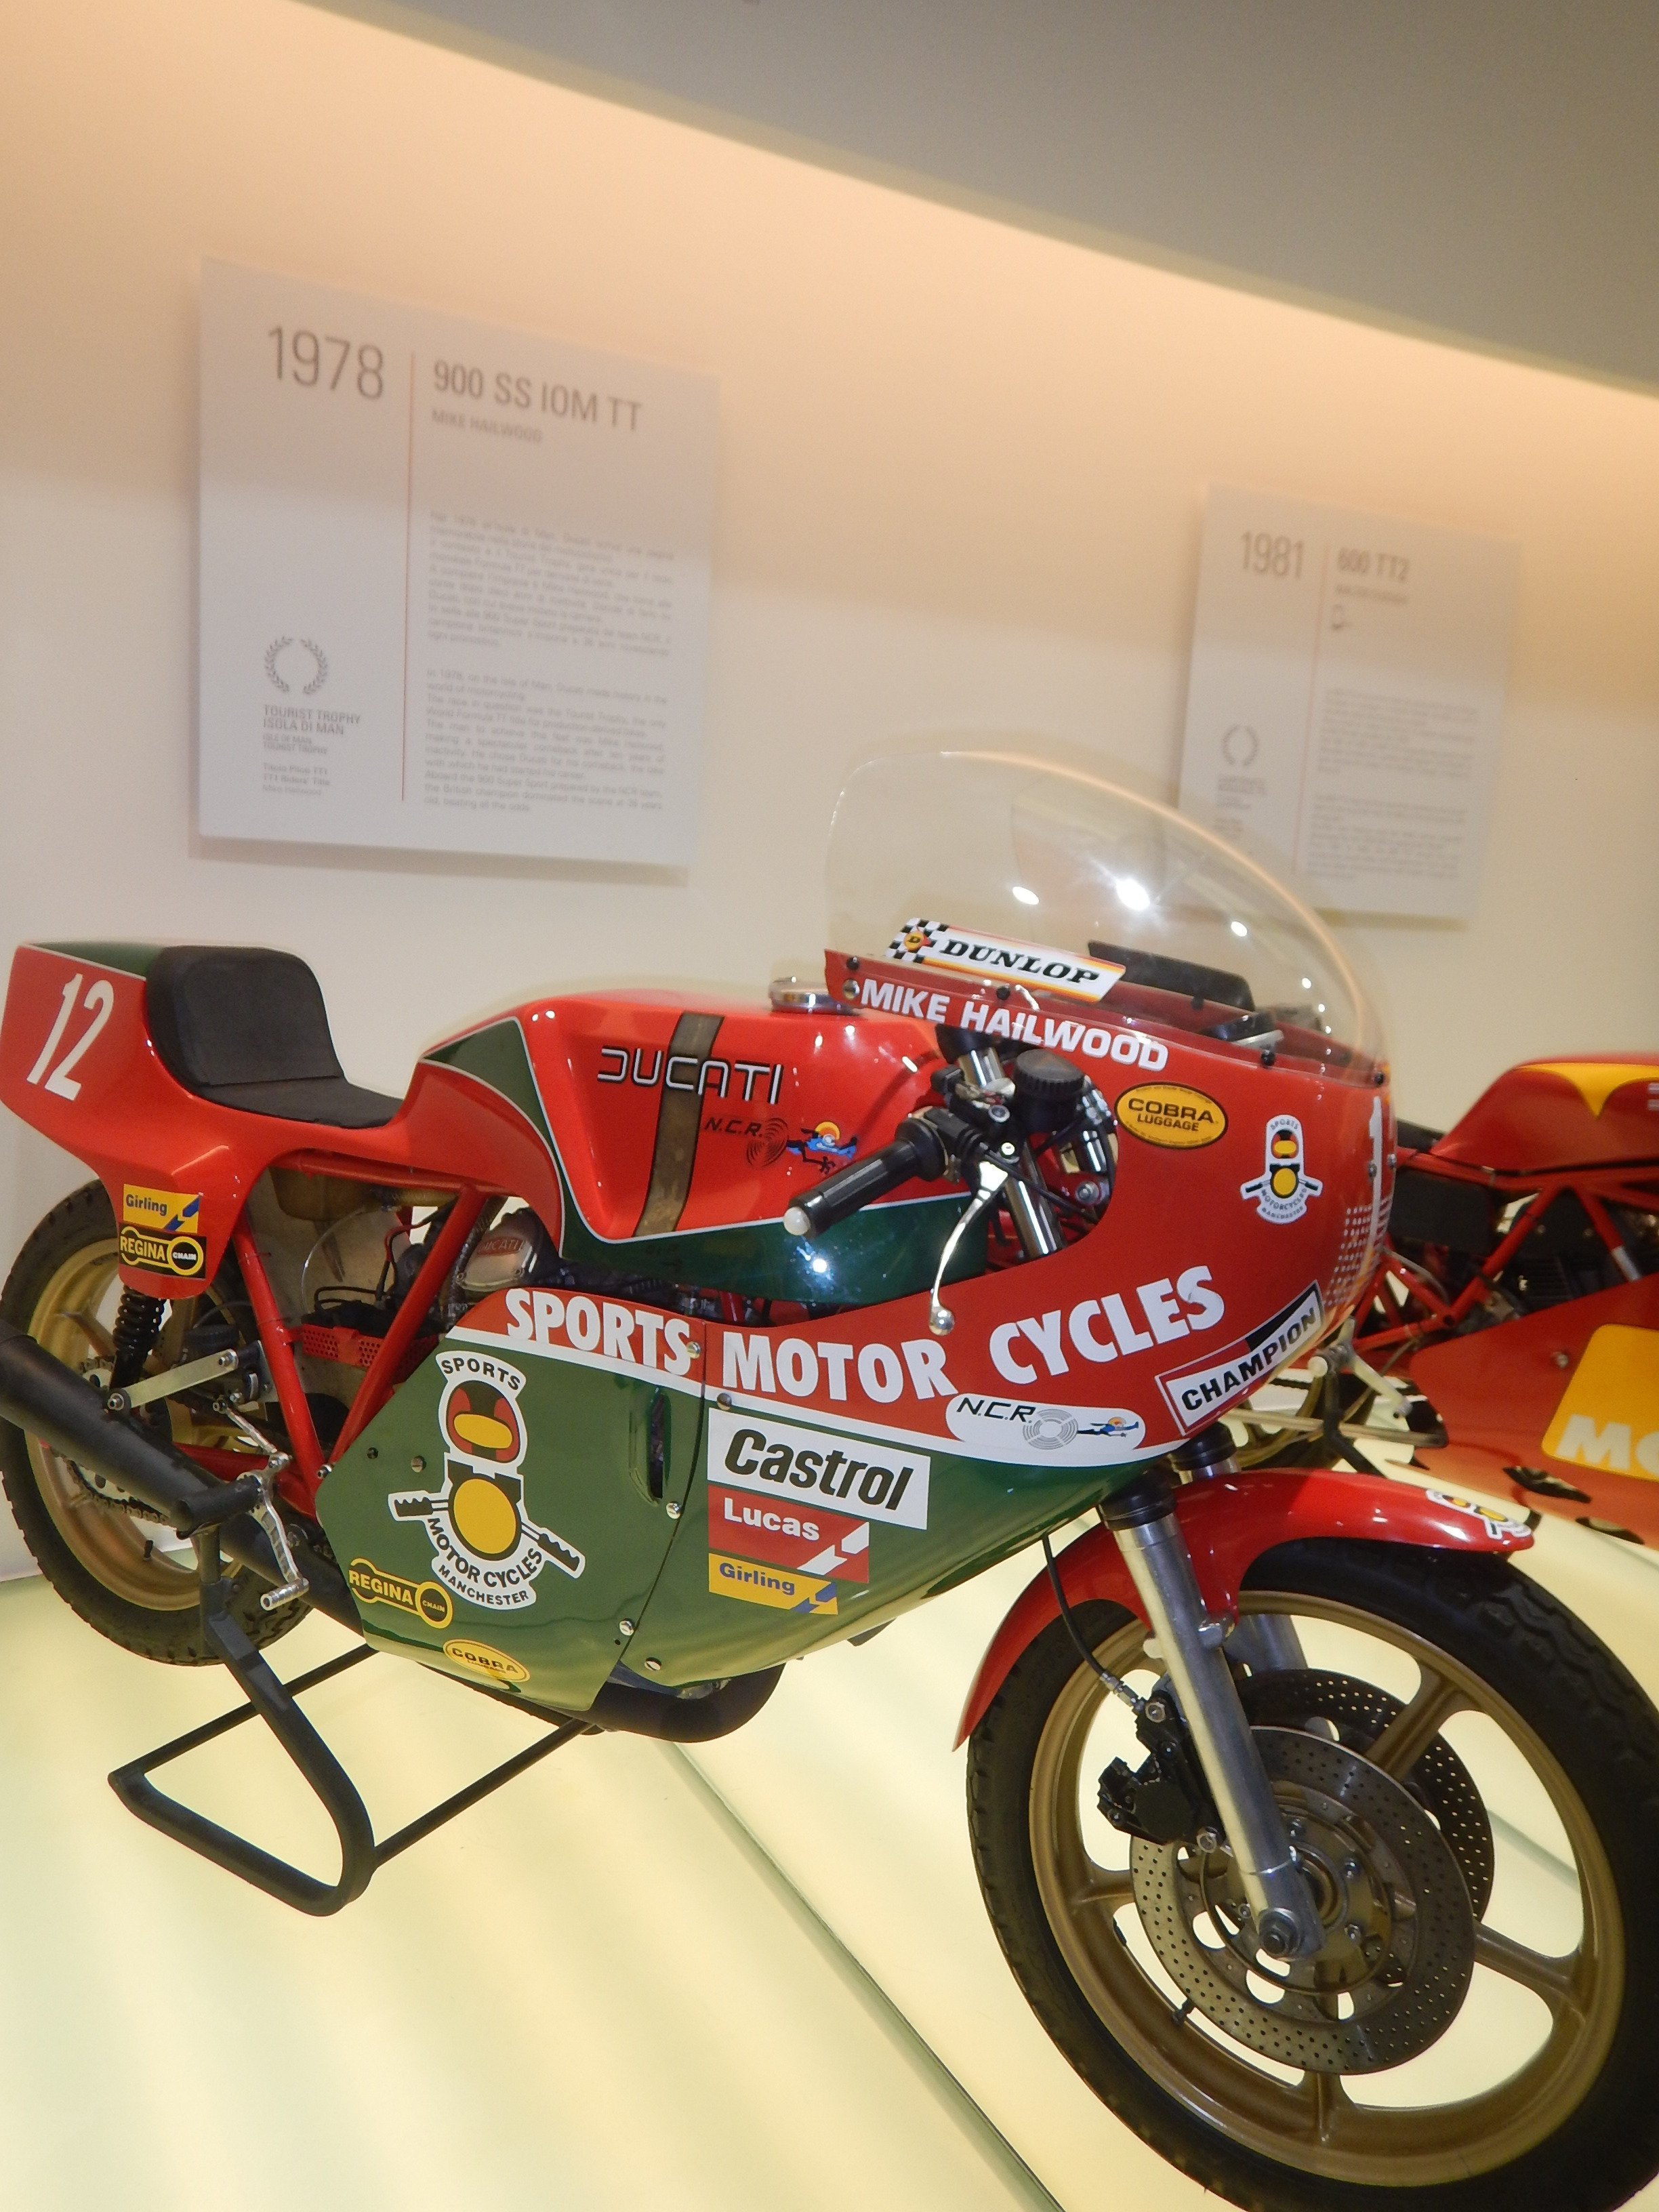 Hailwoods bike, they had all the champions bikes including Stoner (below) and Troy Bayliss and Troy Corser. Not Rossi even though he rode for Ducati he didn't win them a championship.